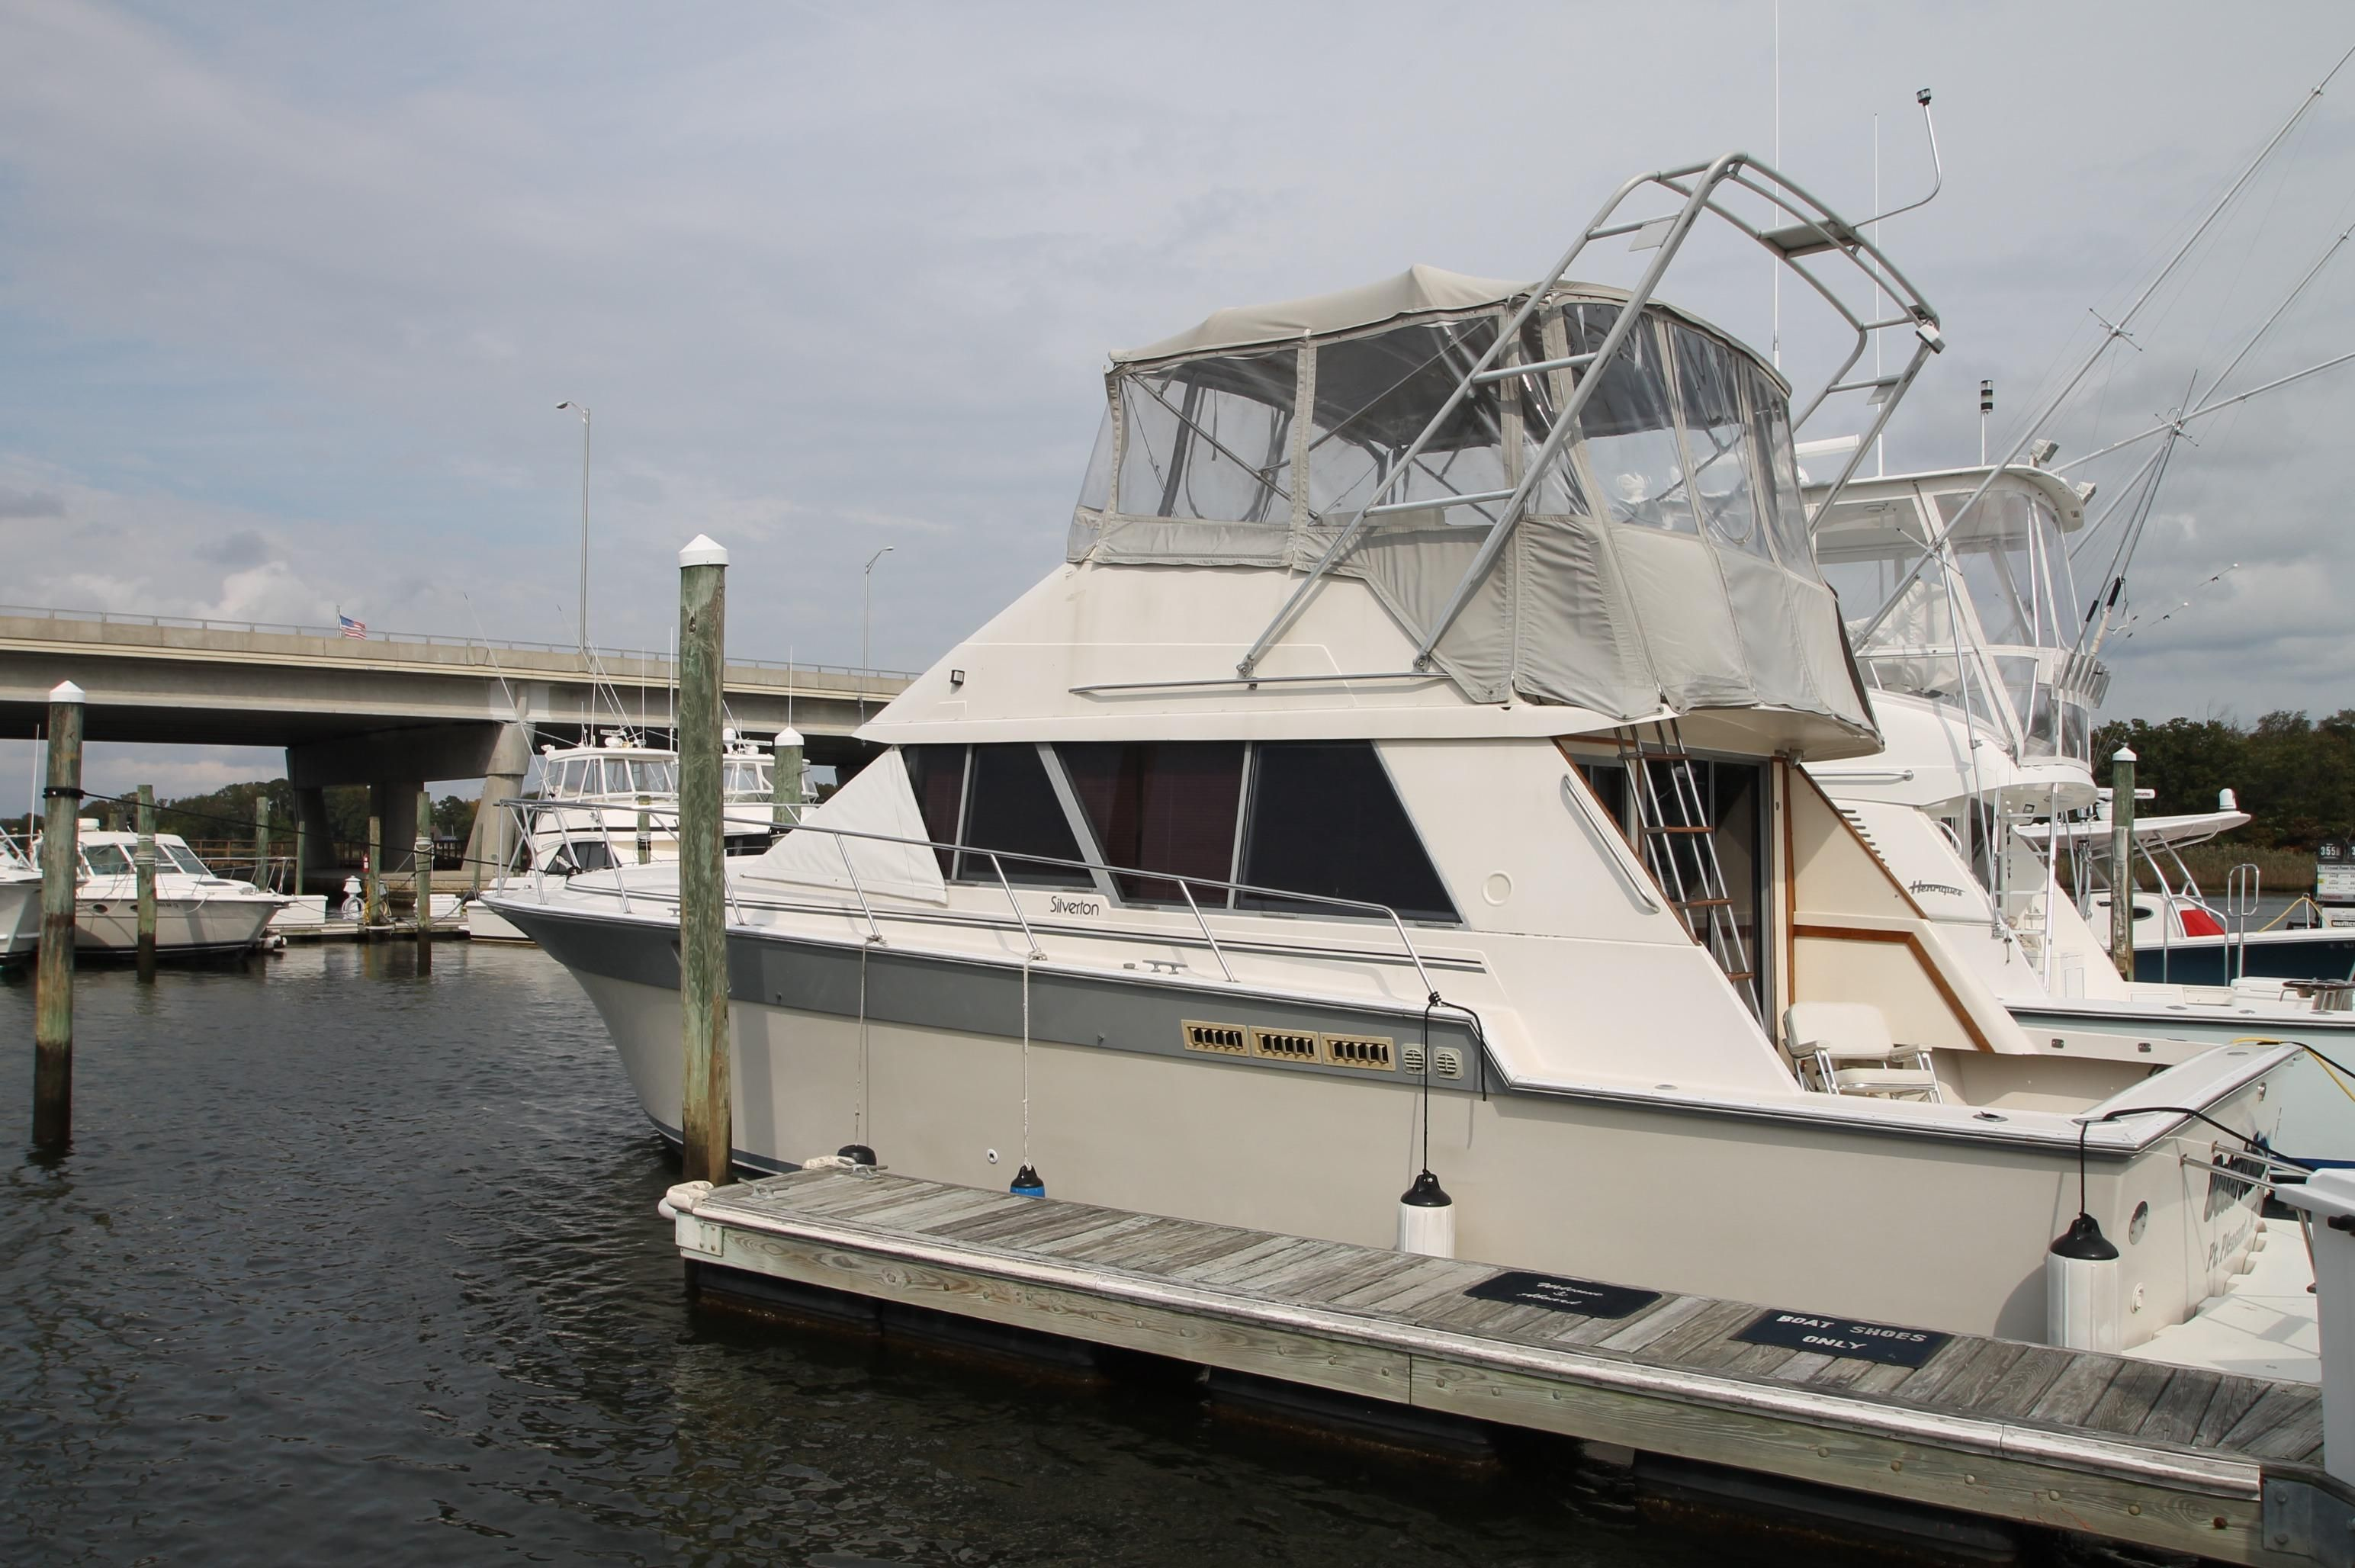 1988 silverton convertible power boat for sale www for The silverton